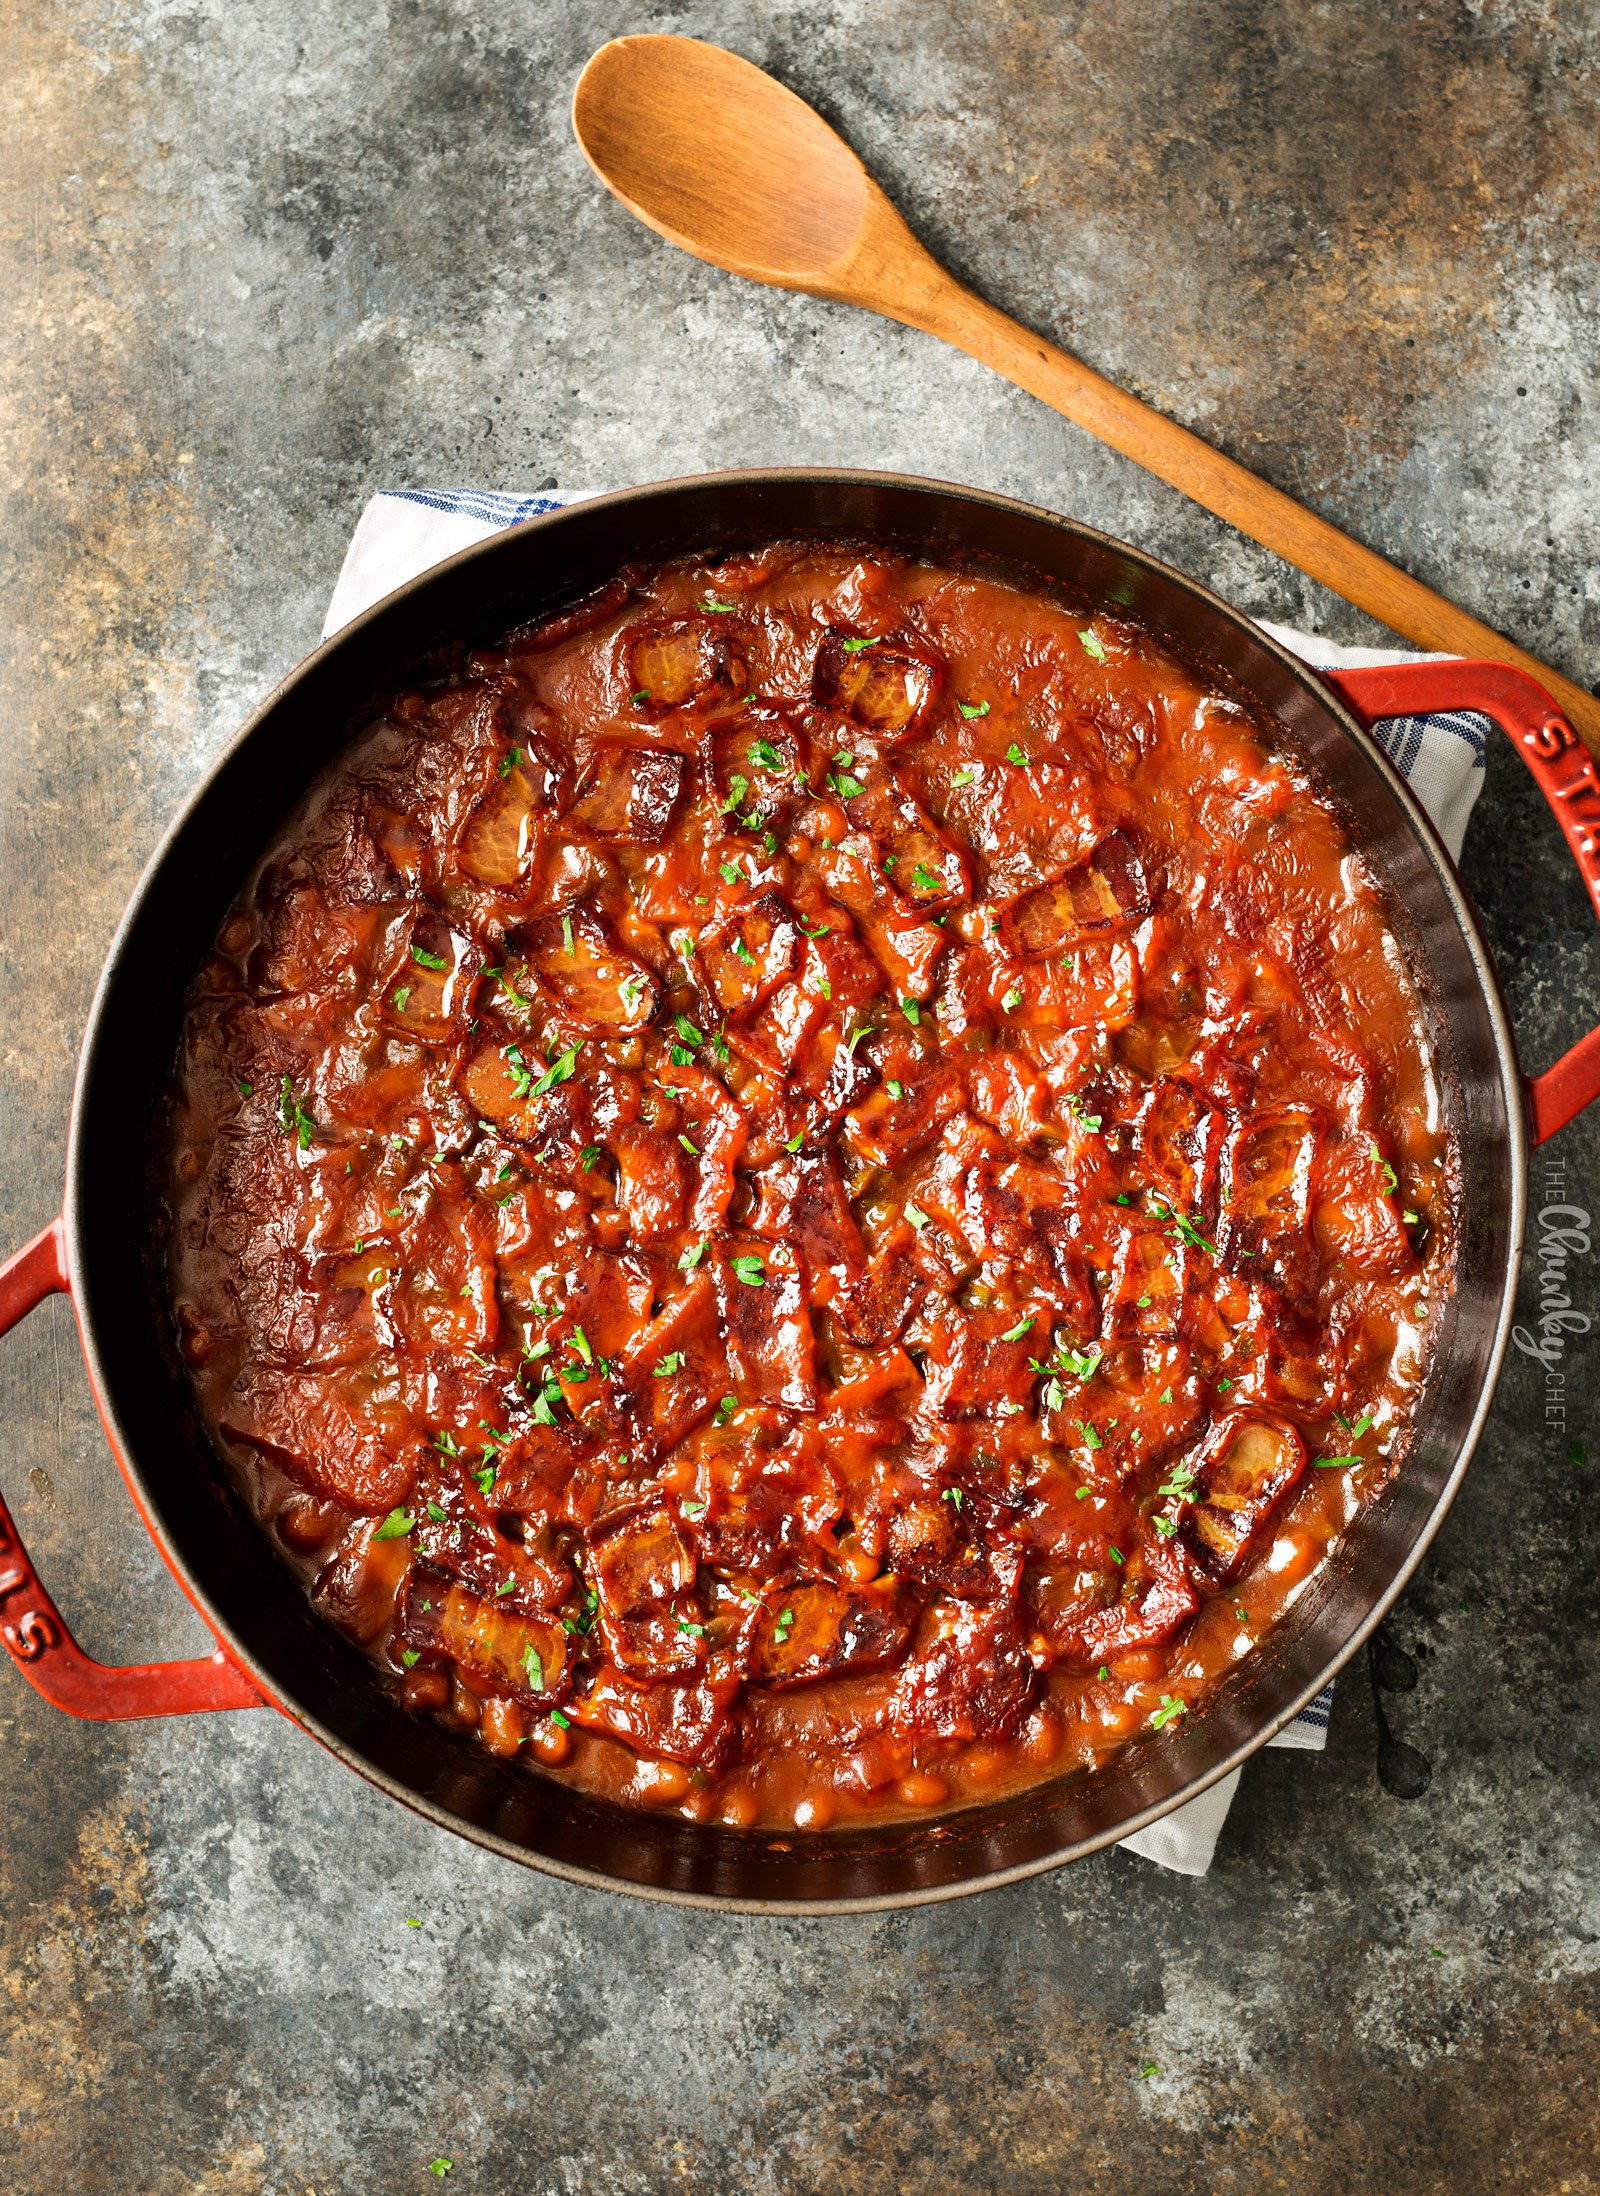 Spicy Baked Beans with Bacon | Perfect for cookouts or summer BBQ's, these baked beans with bacon have a mouthwatering spicy kick from jalapeños that make for an unforgettable side dish! | http://thechunkychef.com